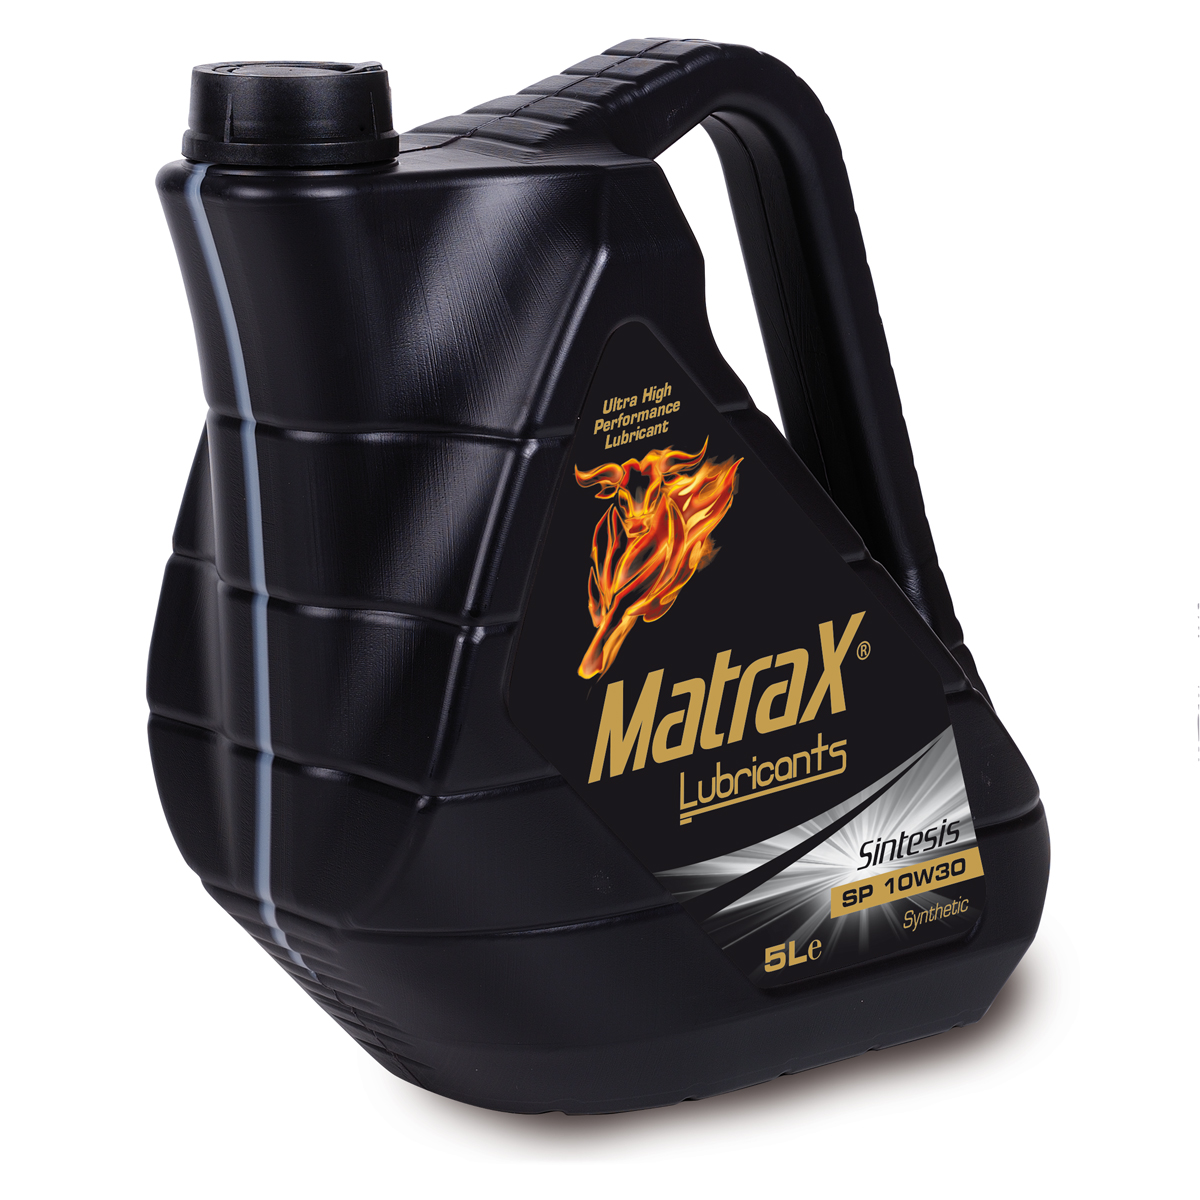 matrax-lubricants-sintesis-sp-10w30-5l